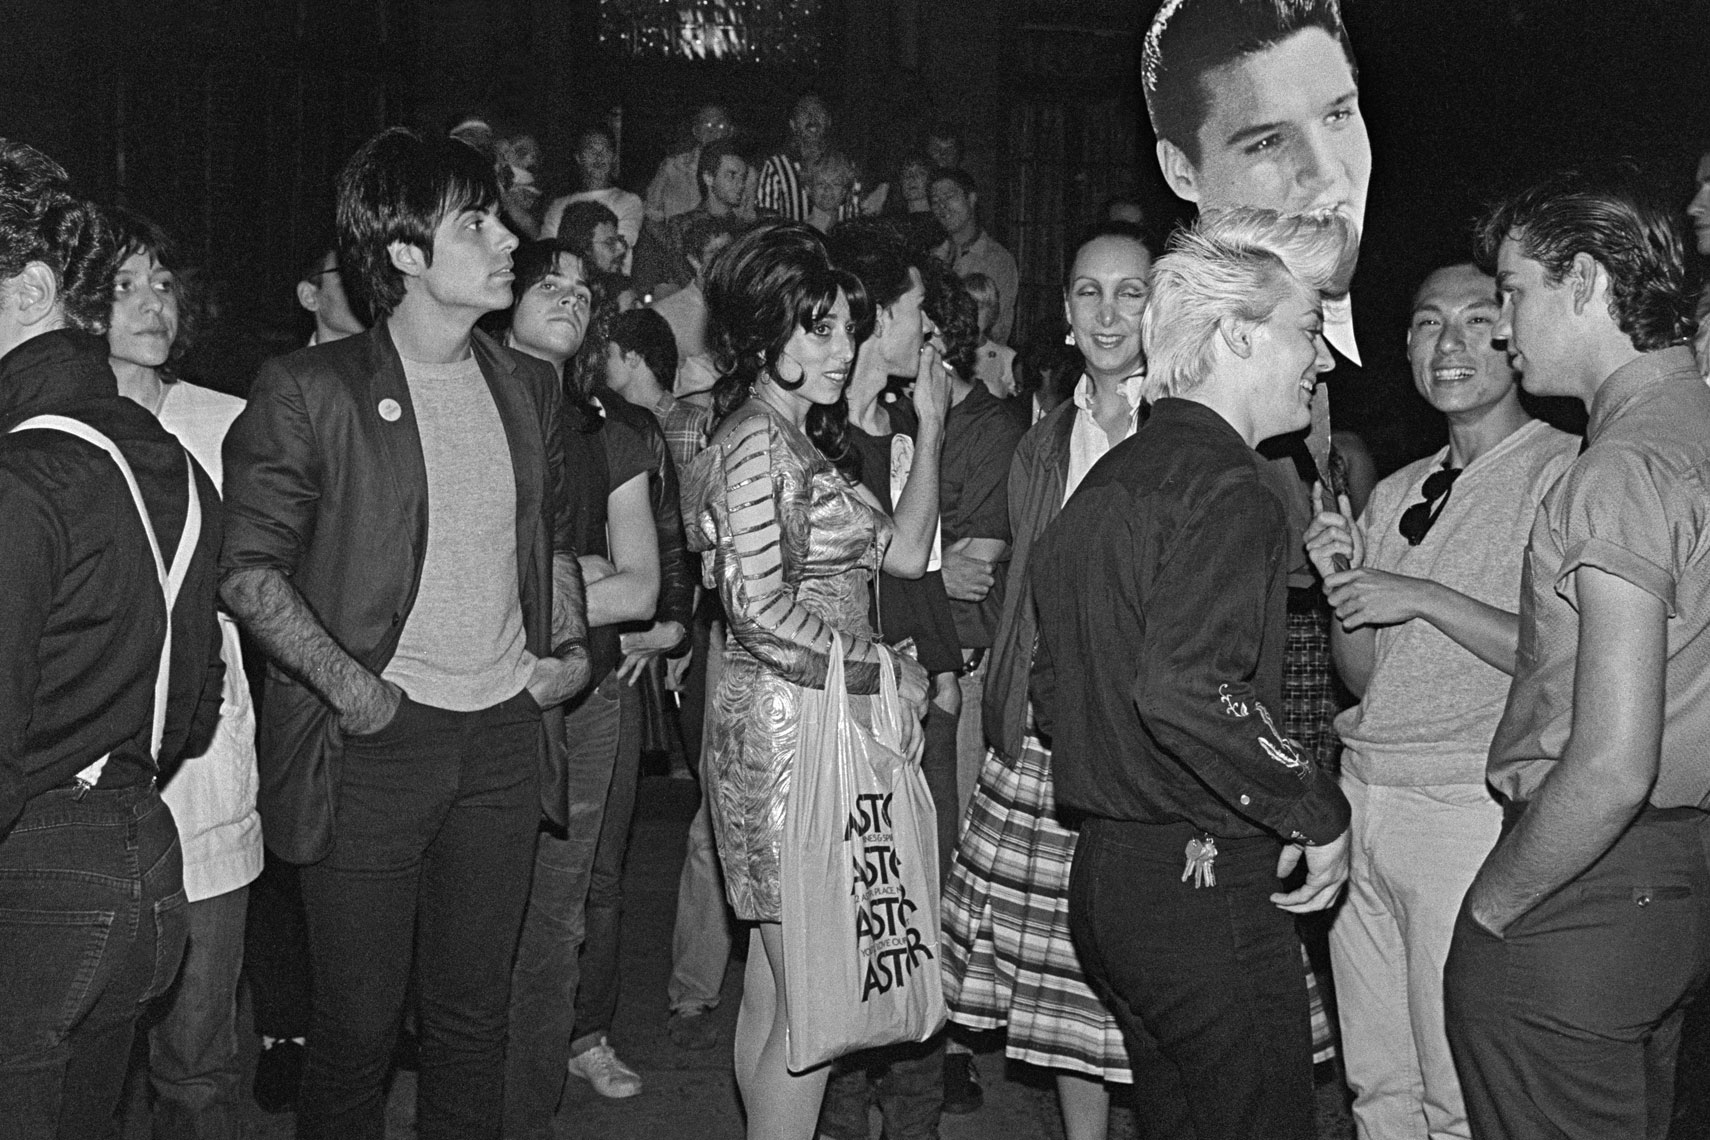 28_Club57_Elvis-Memorial-Party-out-on-street-after-fire-in-Club_John-Sex-and-Tseng-Kwong-Chi_0880.jpg